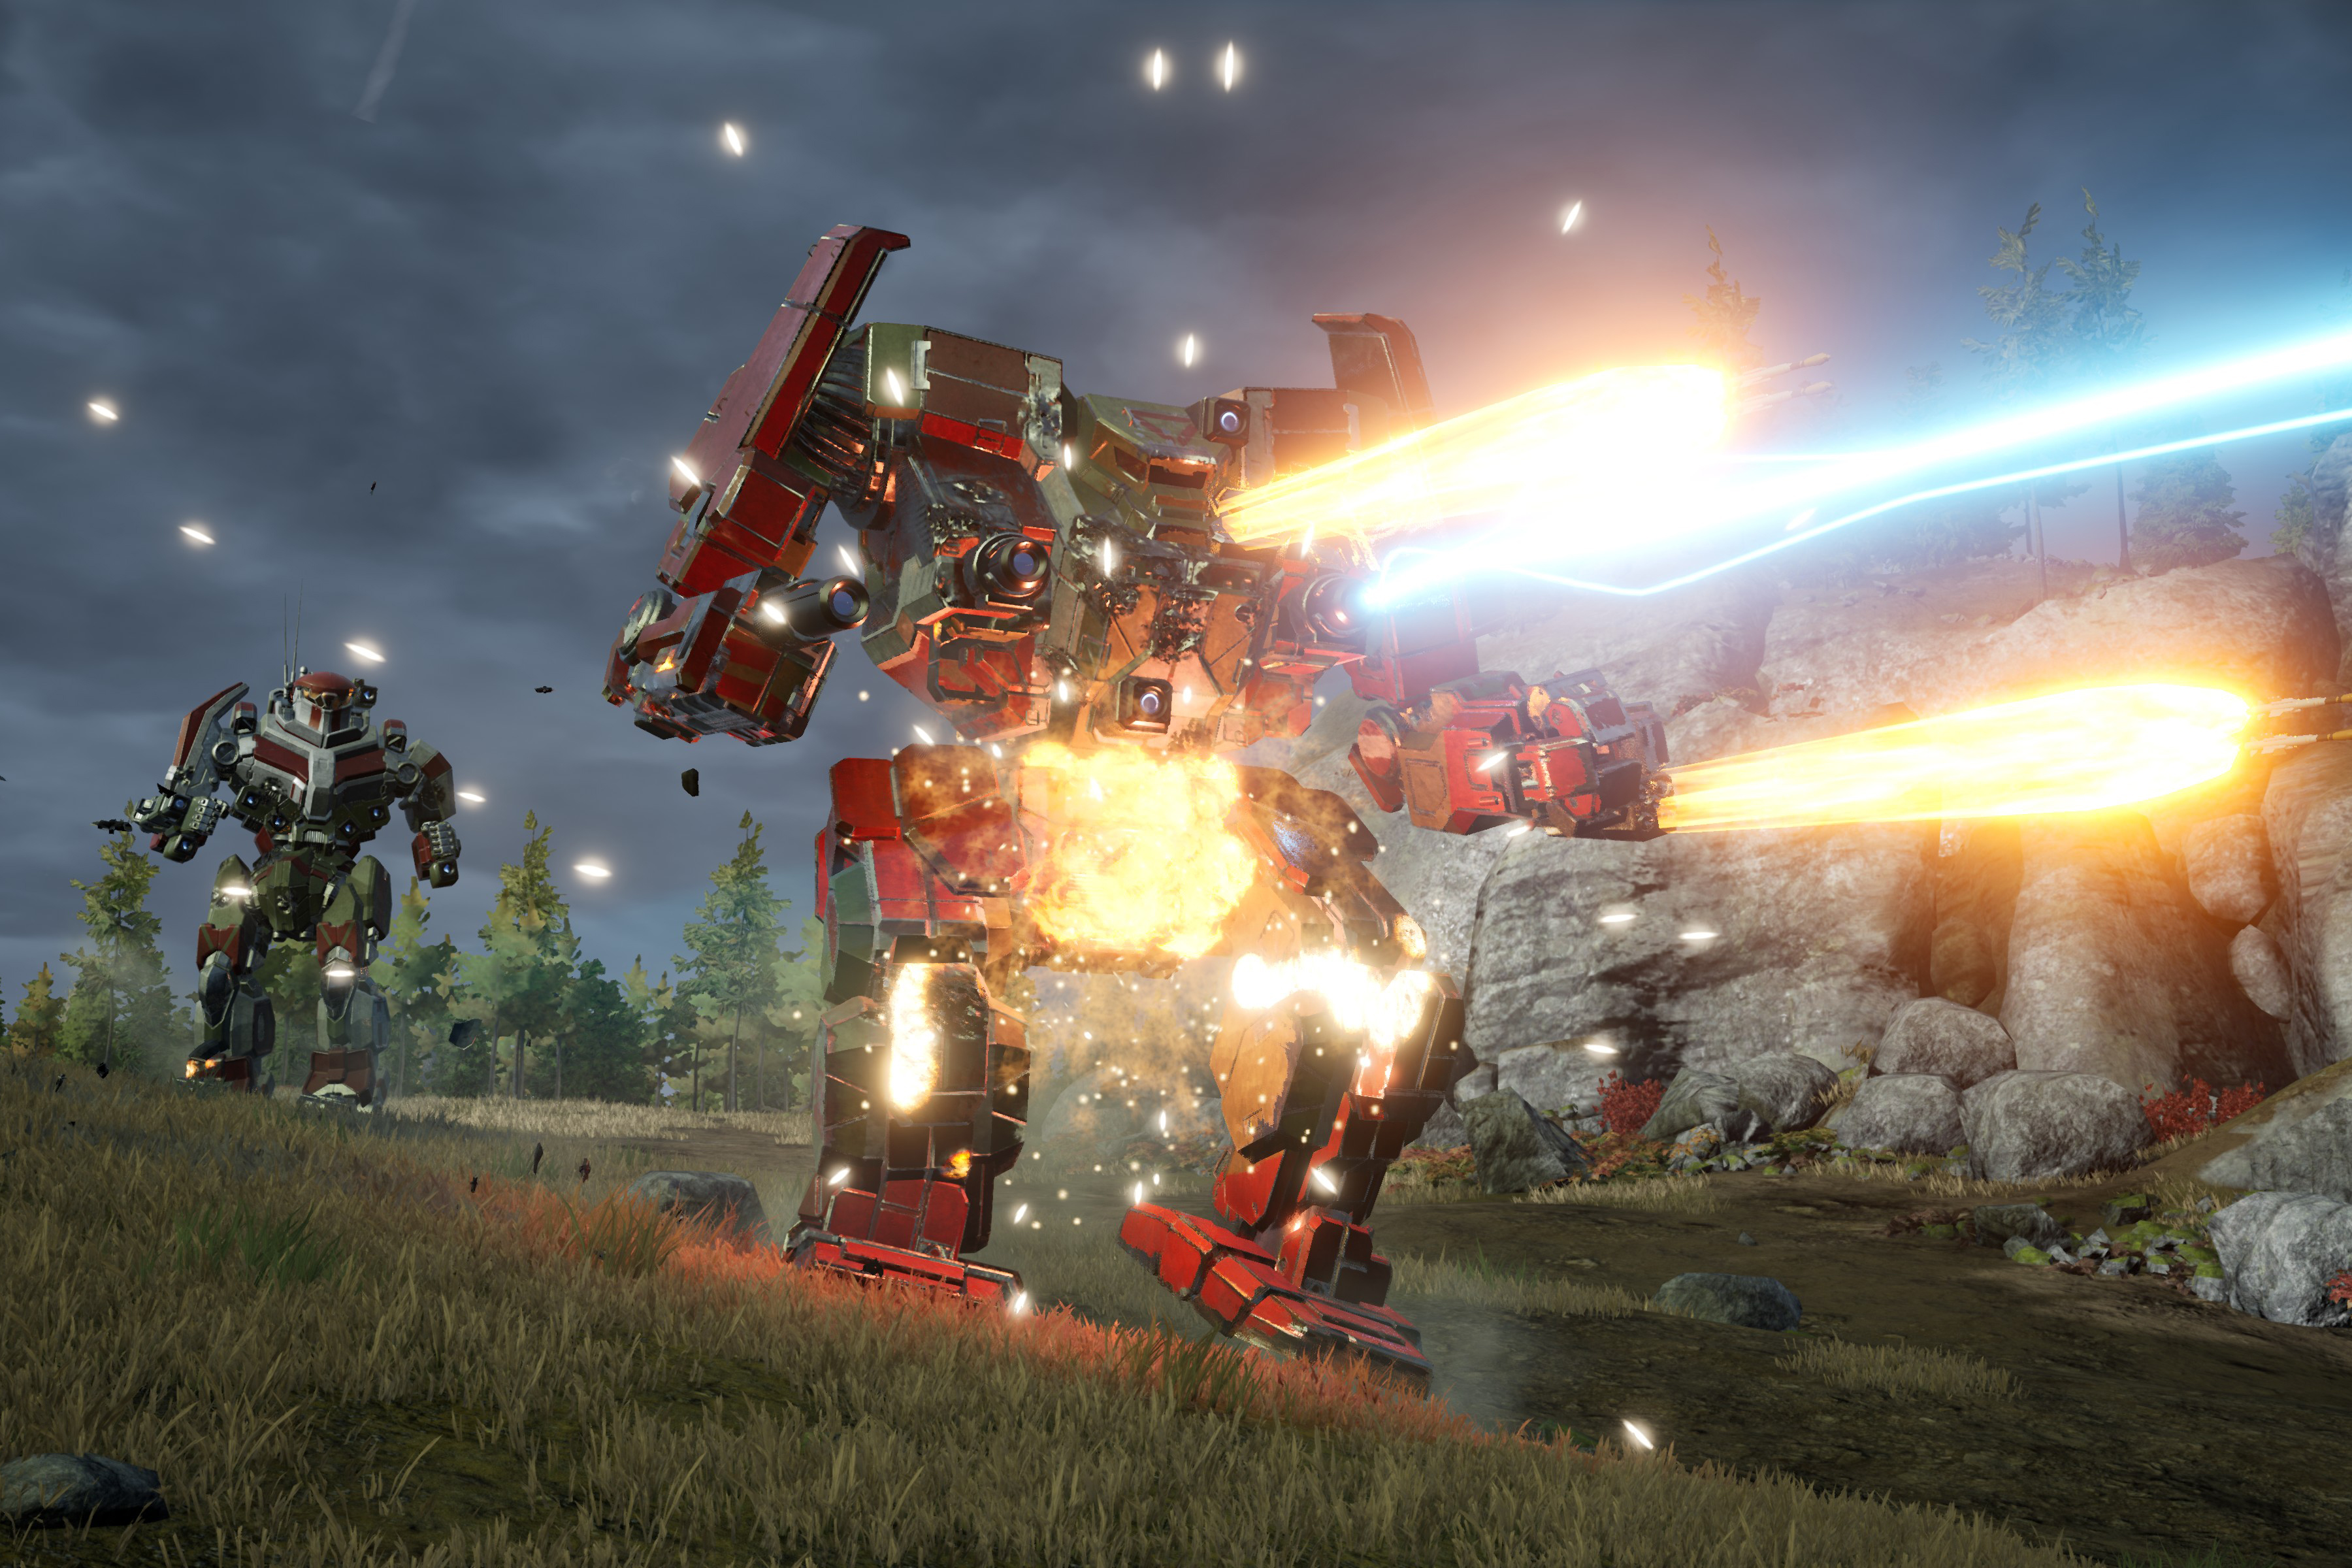 an Awesome-class BattleMech lets loose with a PPC while incoming missiles explode on its torso in MechWarrior 5: Mercenaries